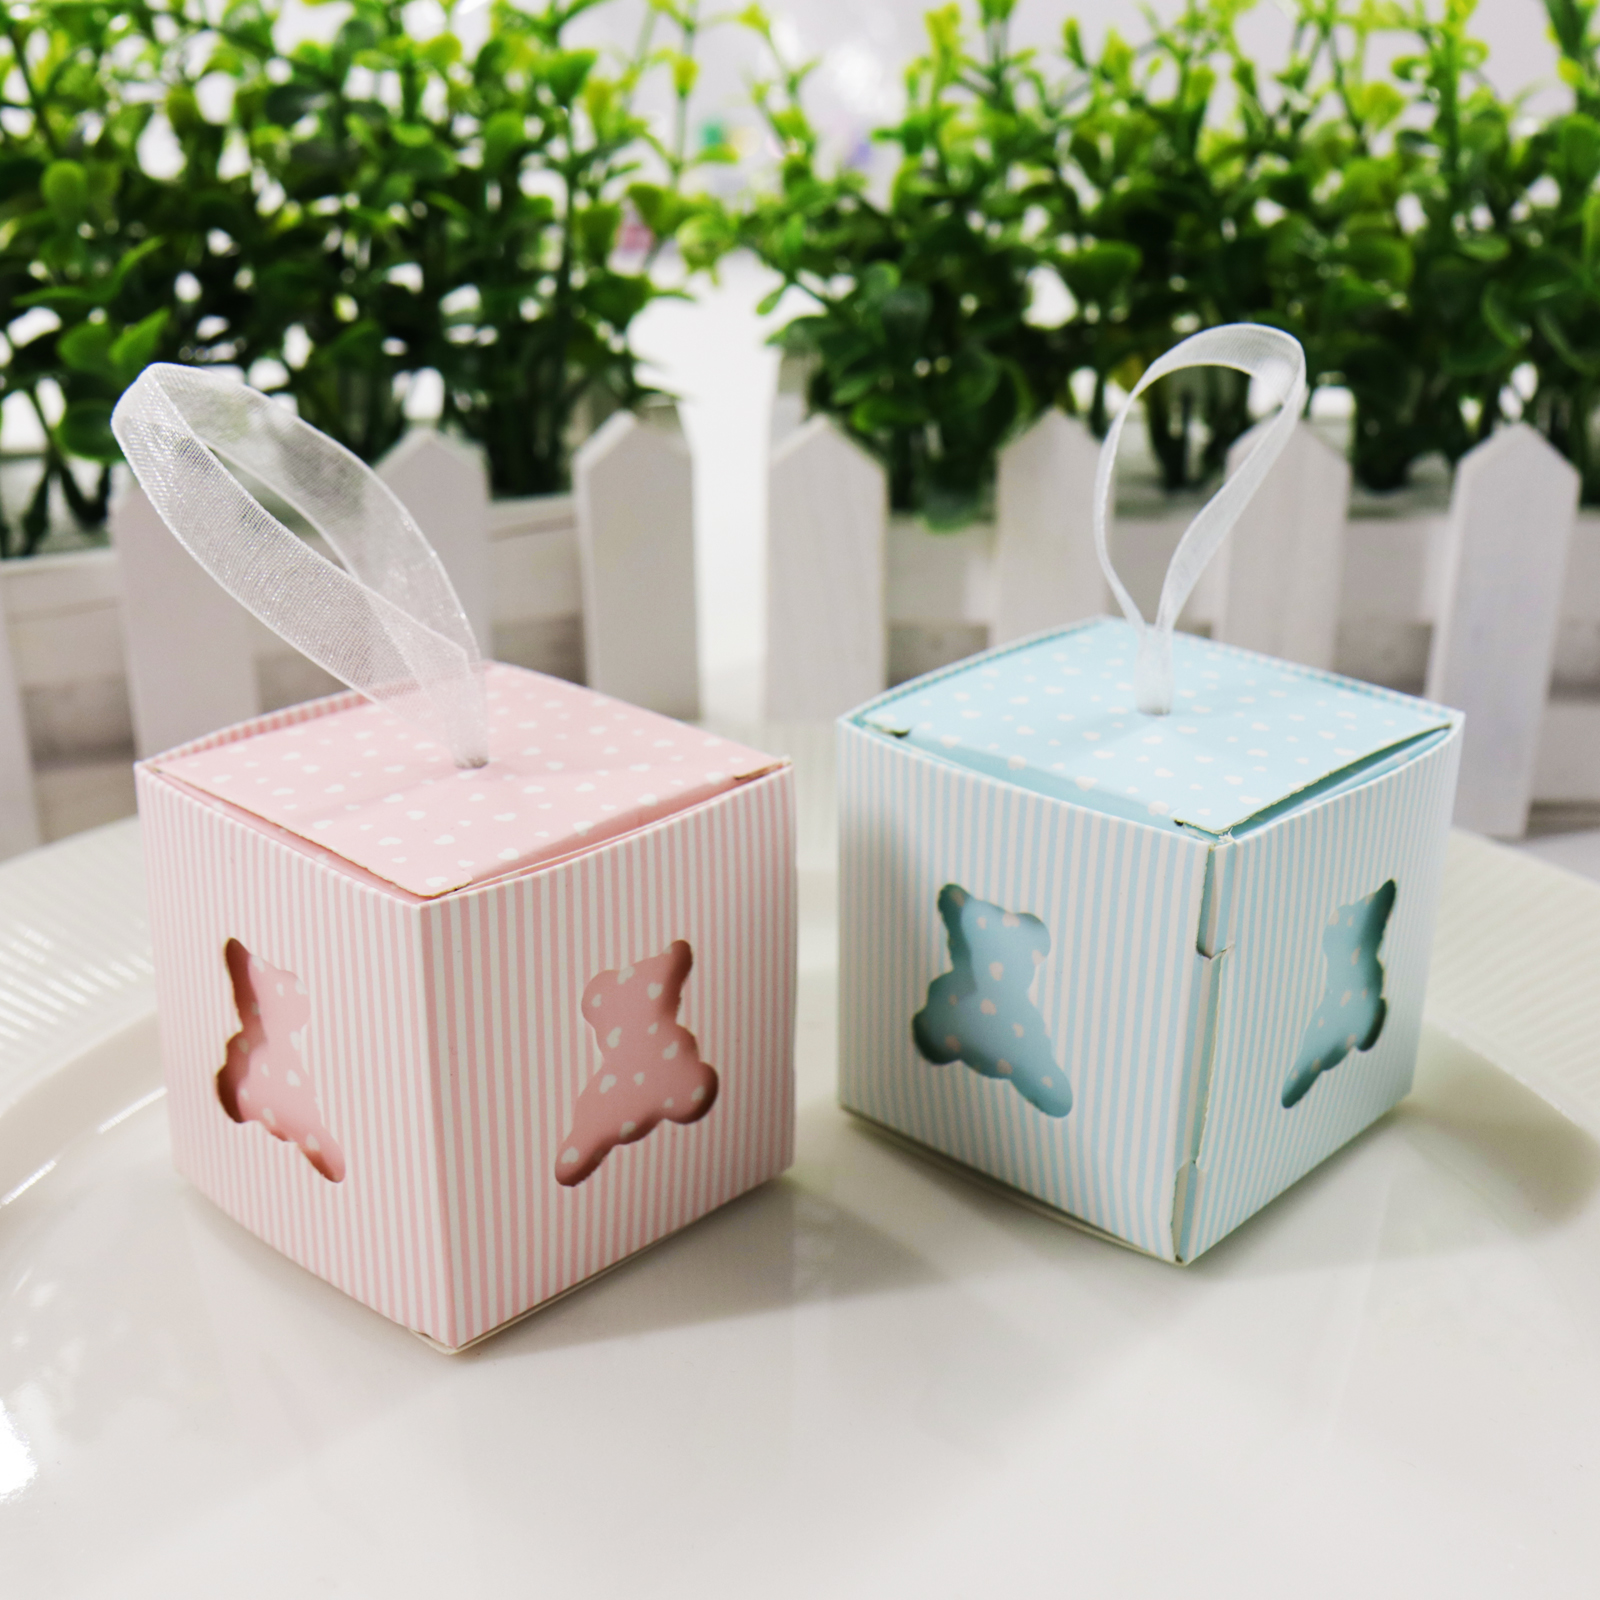 10pcs/lot Hollow Bear Candy Boxes DIY Baby Shower Birthday Party 5*5*5cm Pink/Blue Cute Wedding Decoration Candy Gift Box